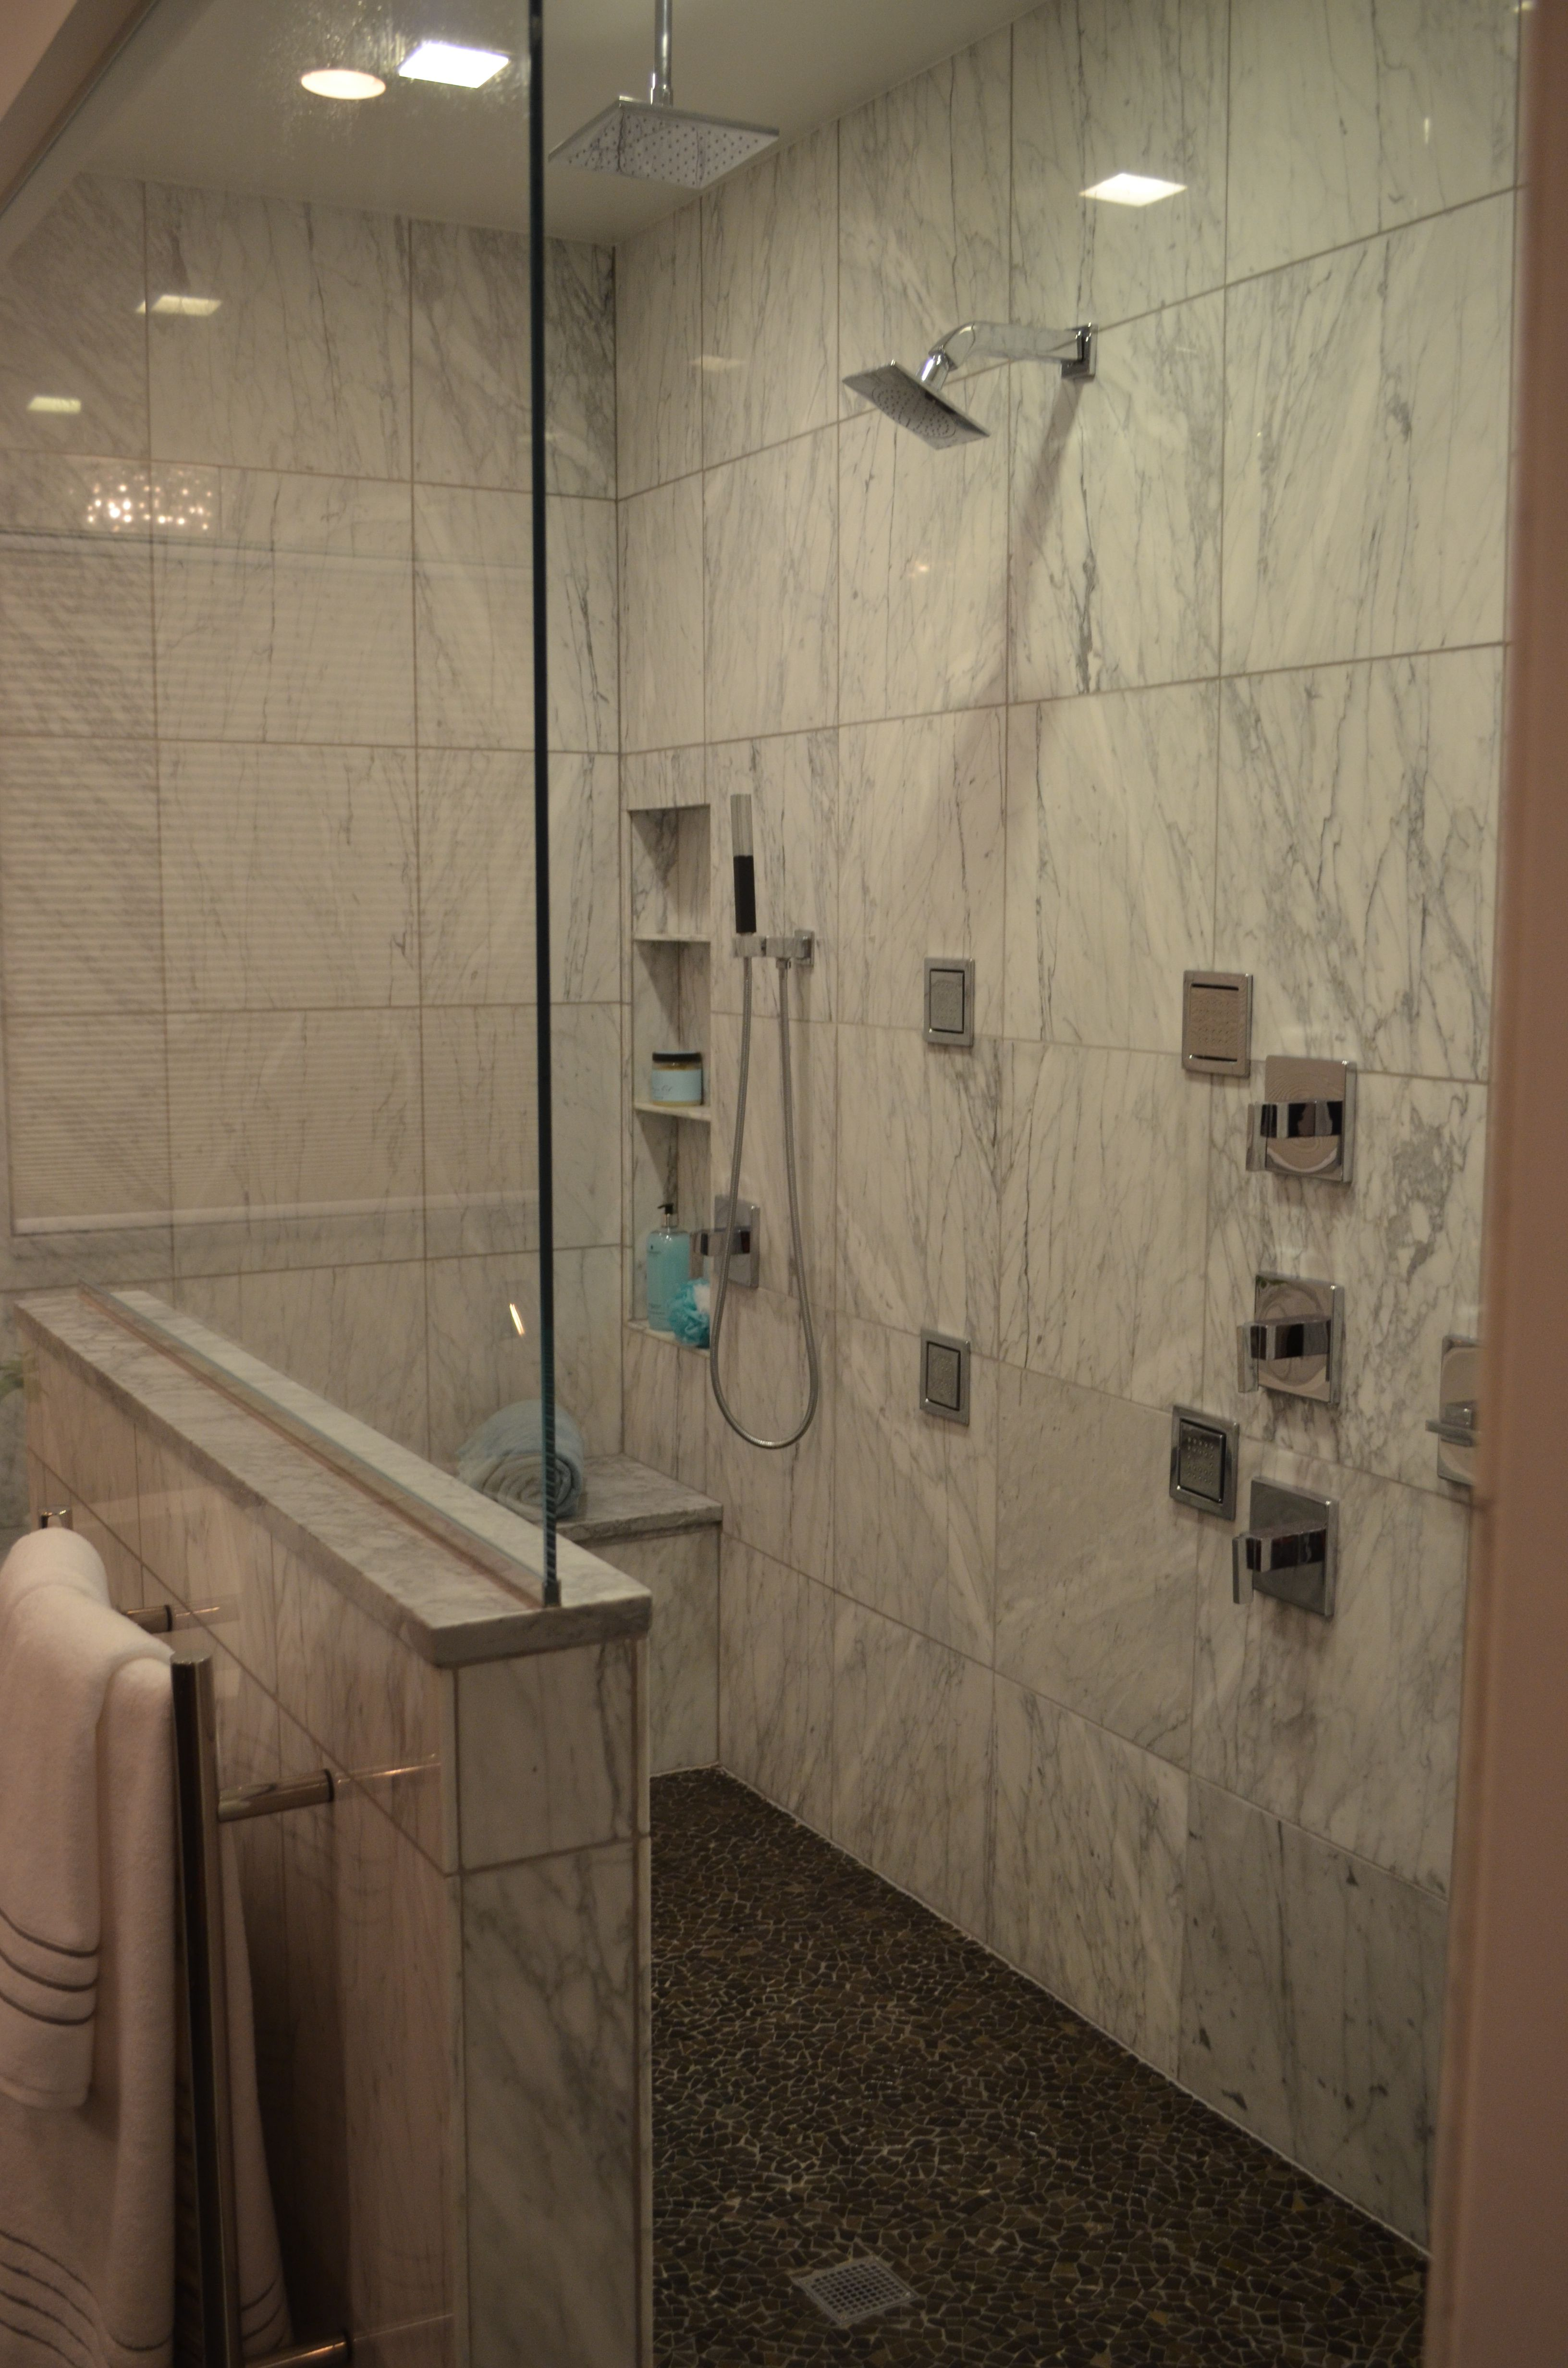 walk in shower with carrara marble kohler loureu0027 fixtures to include body sprayers